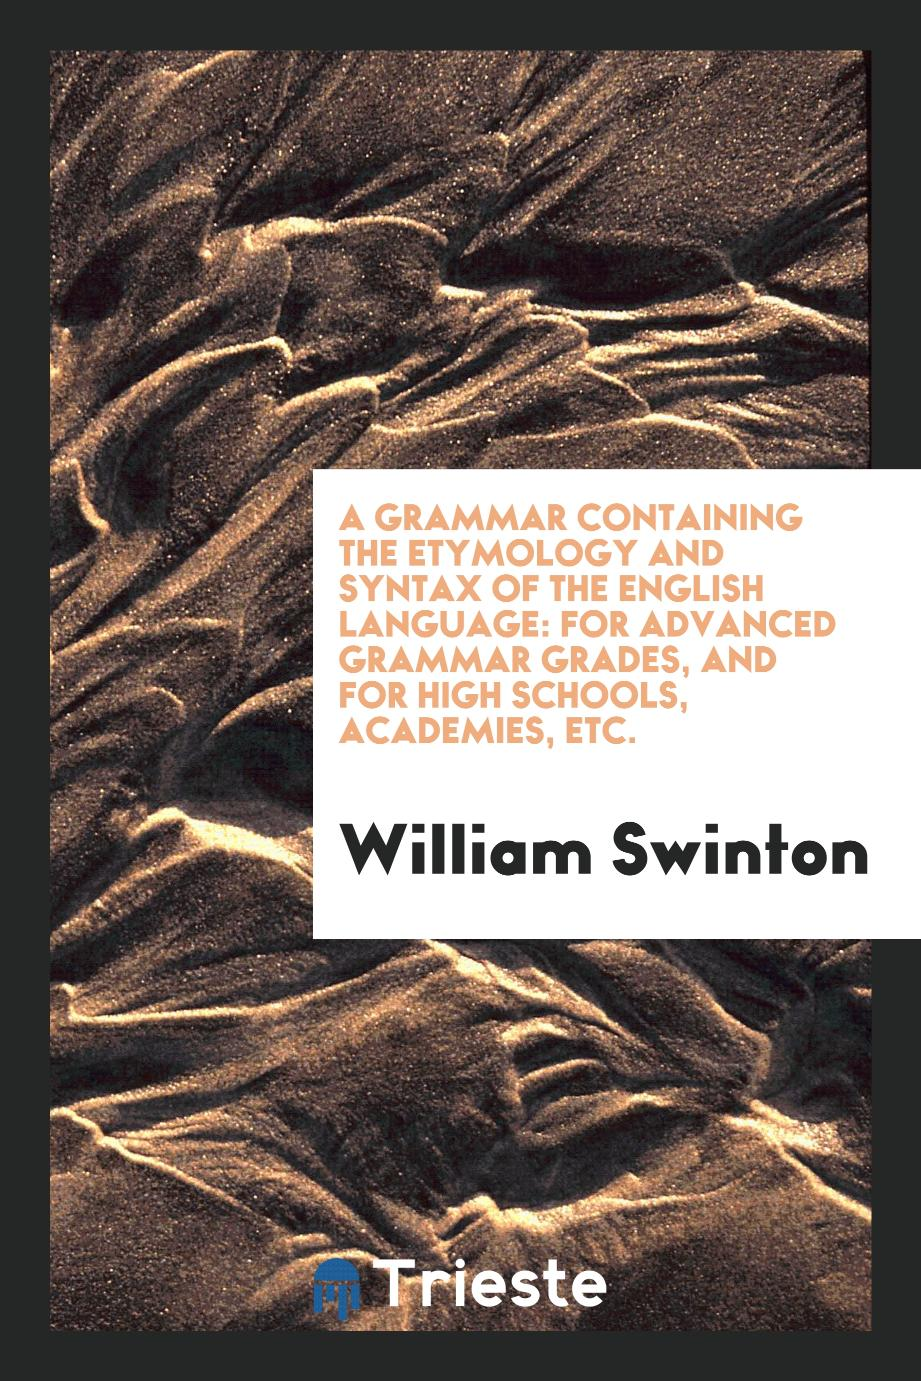 A grammar containing the etymology and syntax of the English language: for advanced grammar grades, and for high schools, academies, etc.